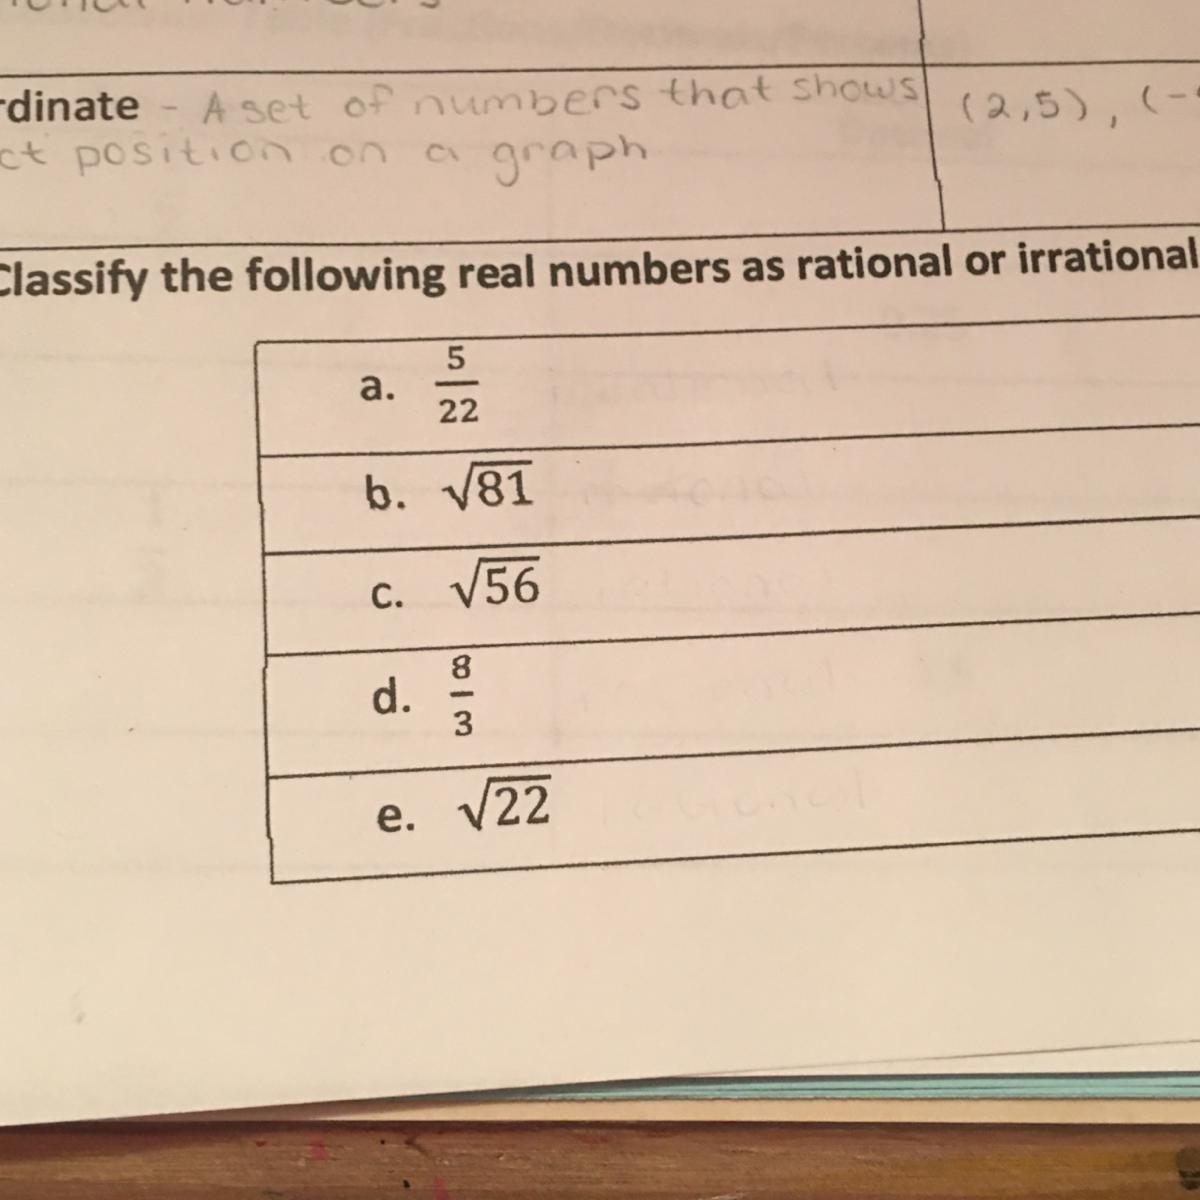 Classify The Following Real Numbers As Rational Or